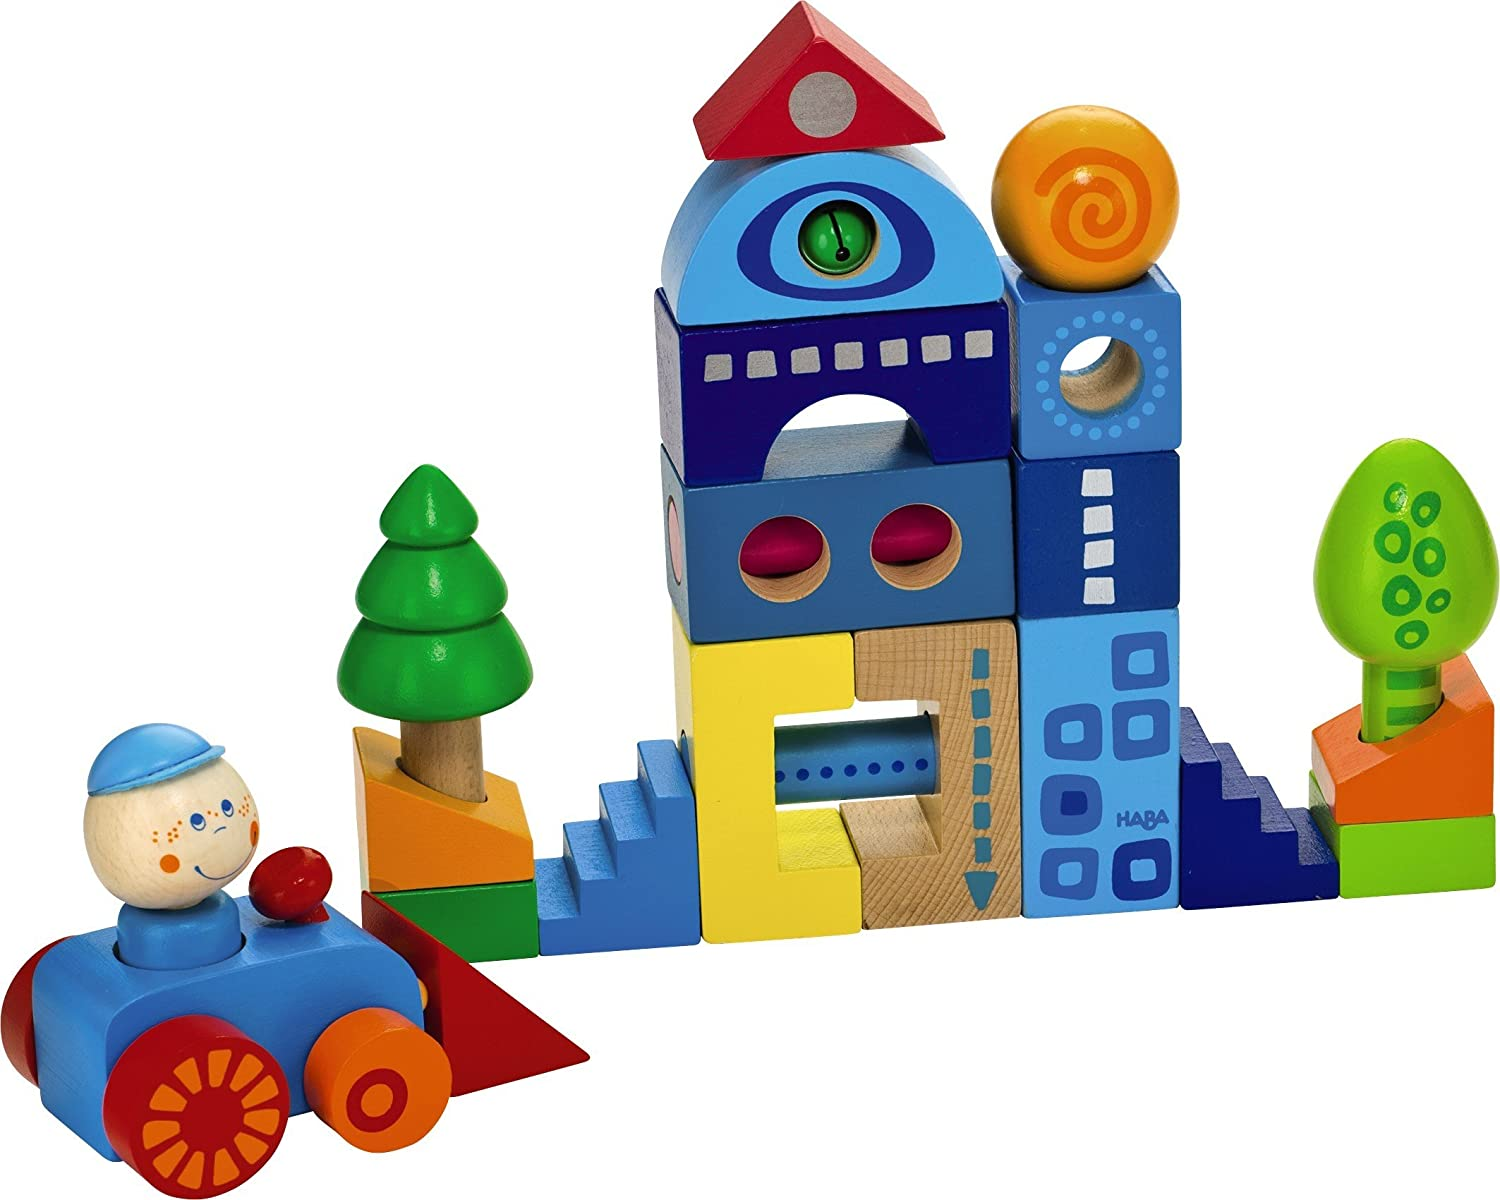 HABAtown Blocks - 25 Piece City Themed Building Set with Car, Driver and Trees for Ages 1+